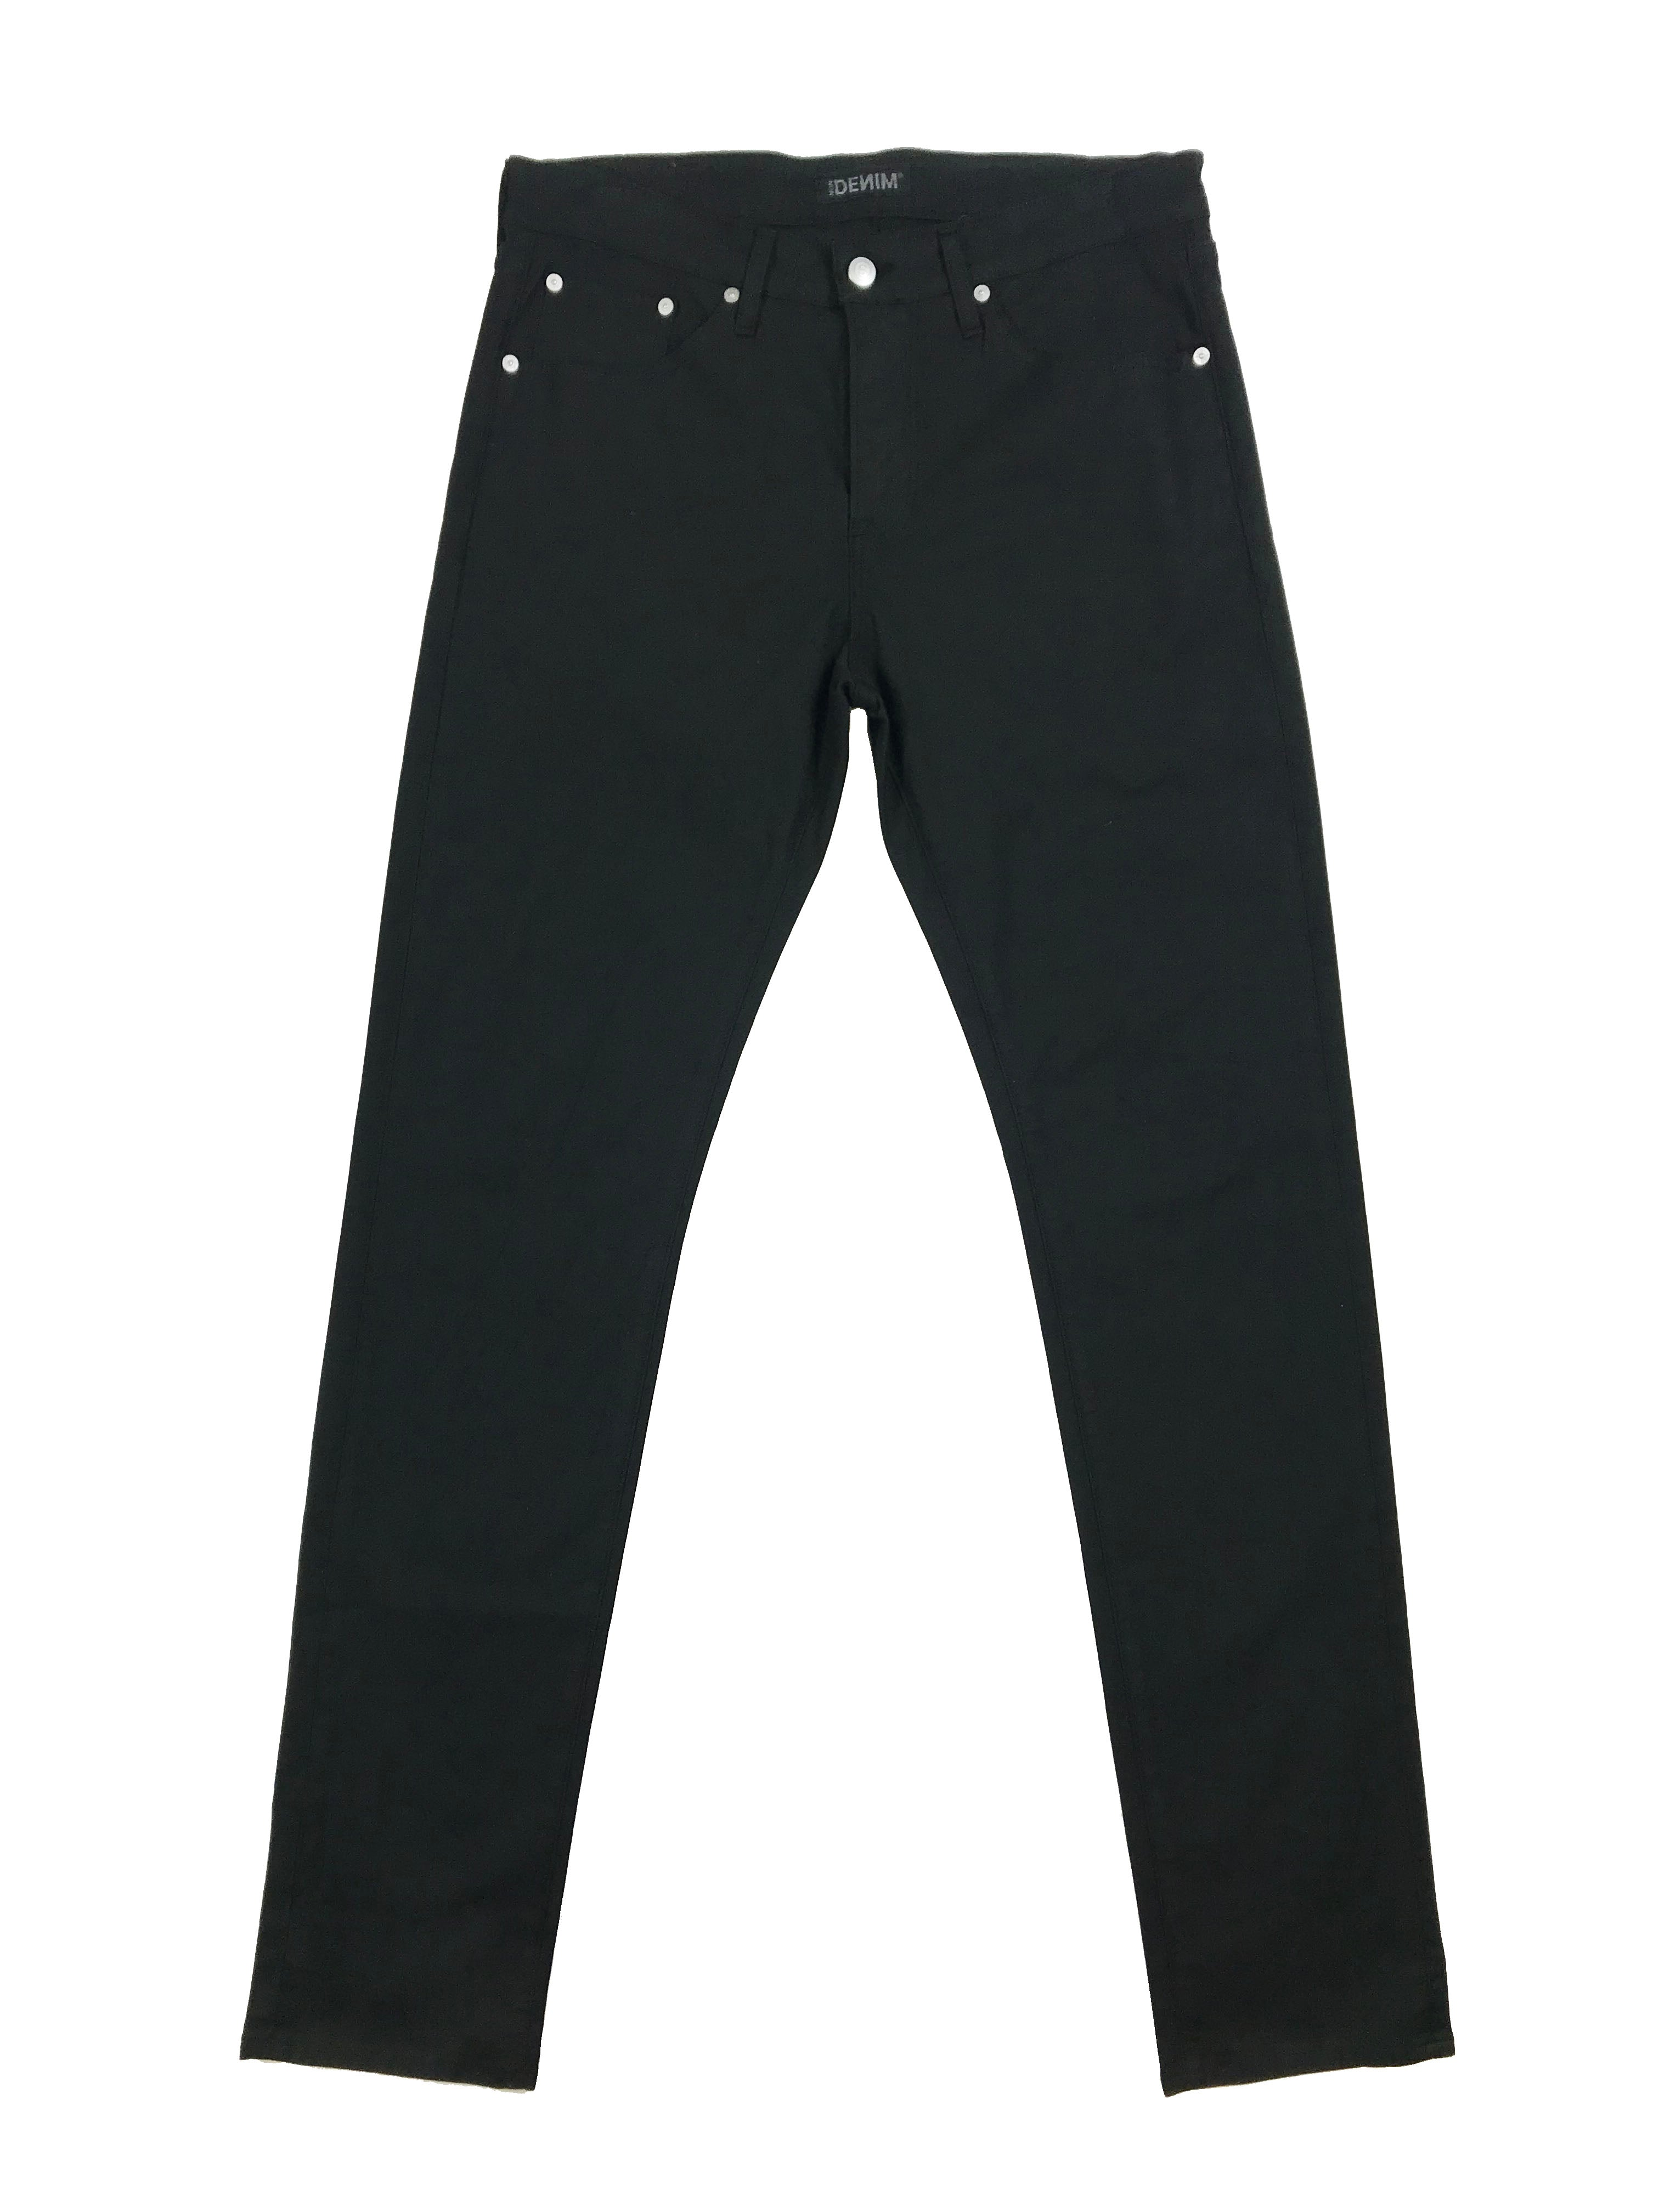 Flat image of S.M.N Studio's Hunter in Black Men's Twill Pants - Slim comfort stretch twill pants dyed in black